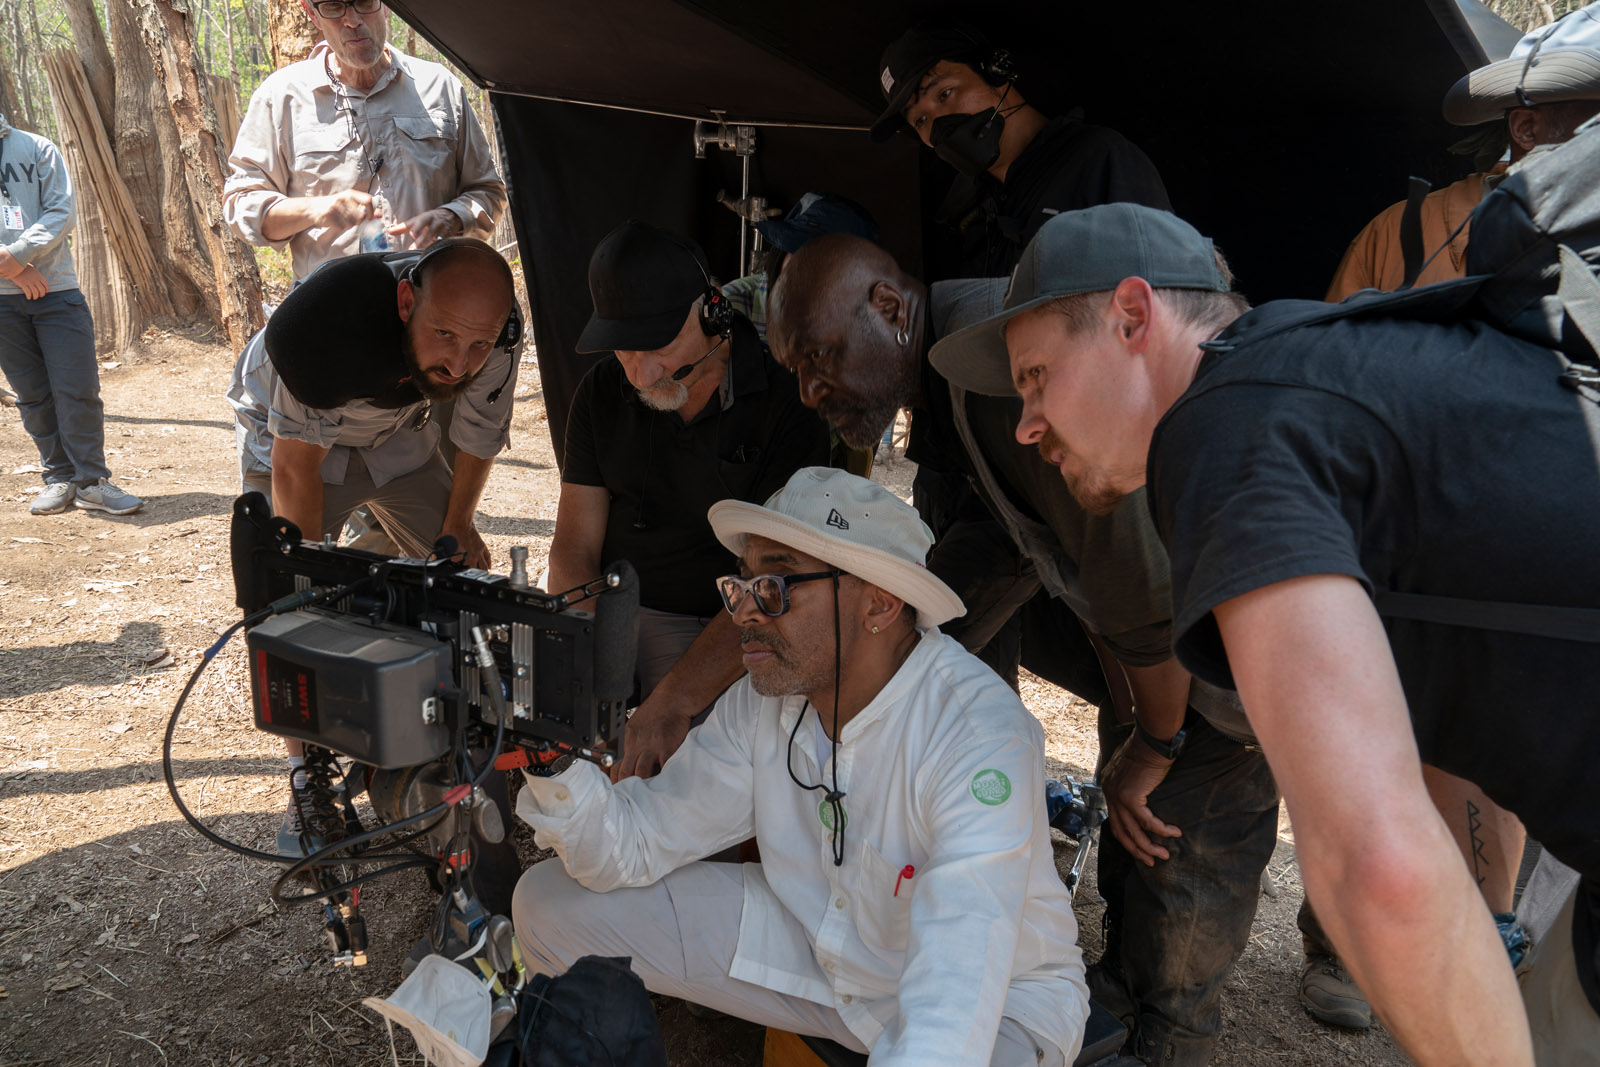 DA 5 BLOODS: (L to R) CINEMATOGRAPHER NEWTON THOMAS SIGEL, DIRECTOR SPIKE LEE, DELROY LINDO as PAUL and JASPER PÄÄKKÖNEN as TRAVIS of DA 5 BLOODS. Cr. DAVID LEE/NETFLIX © 2020